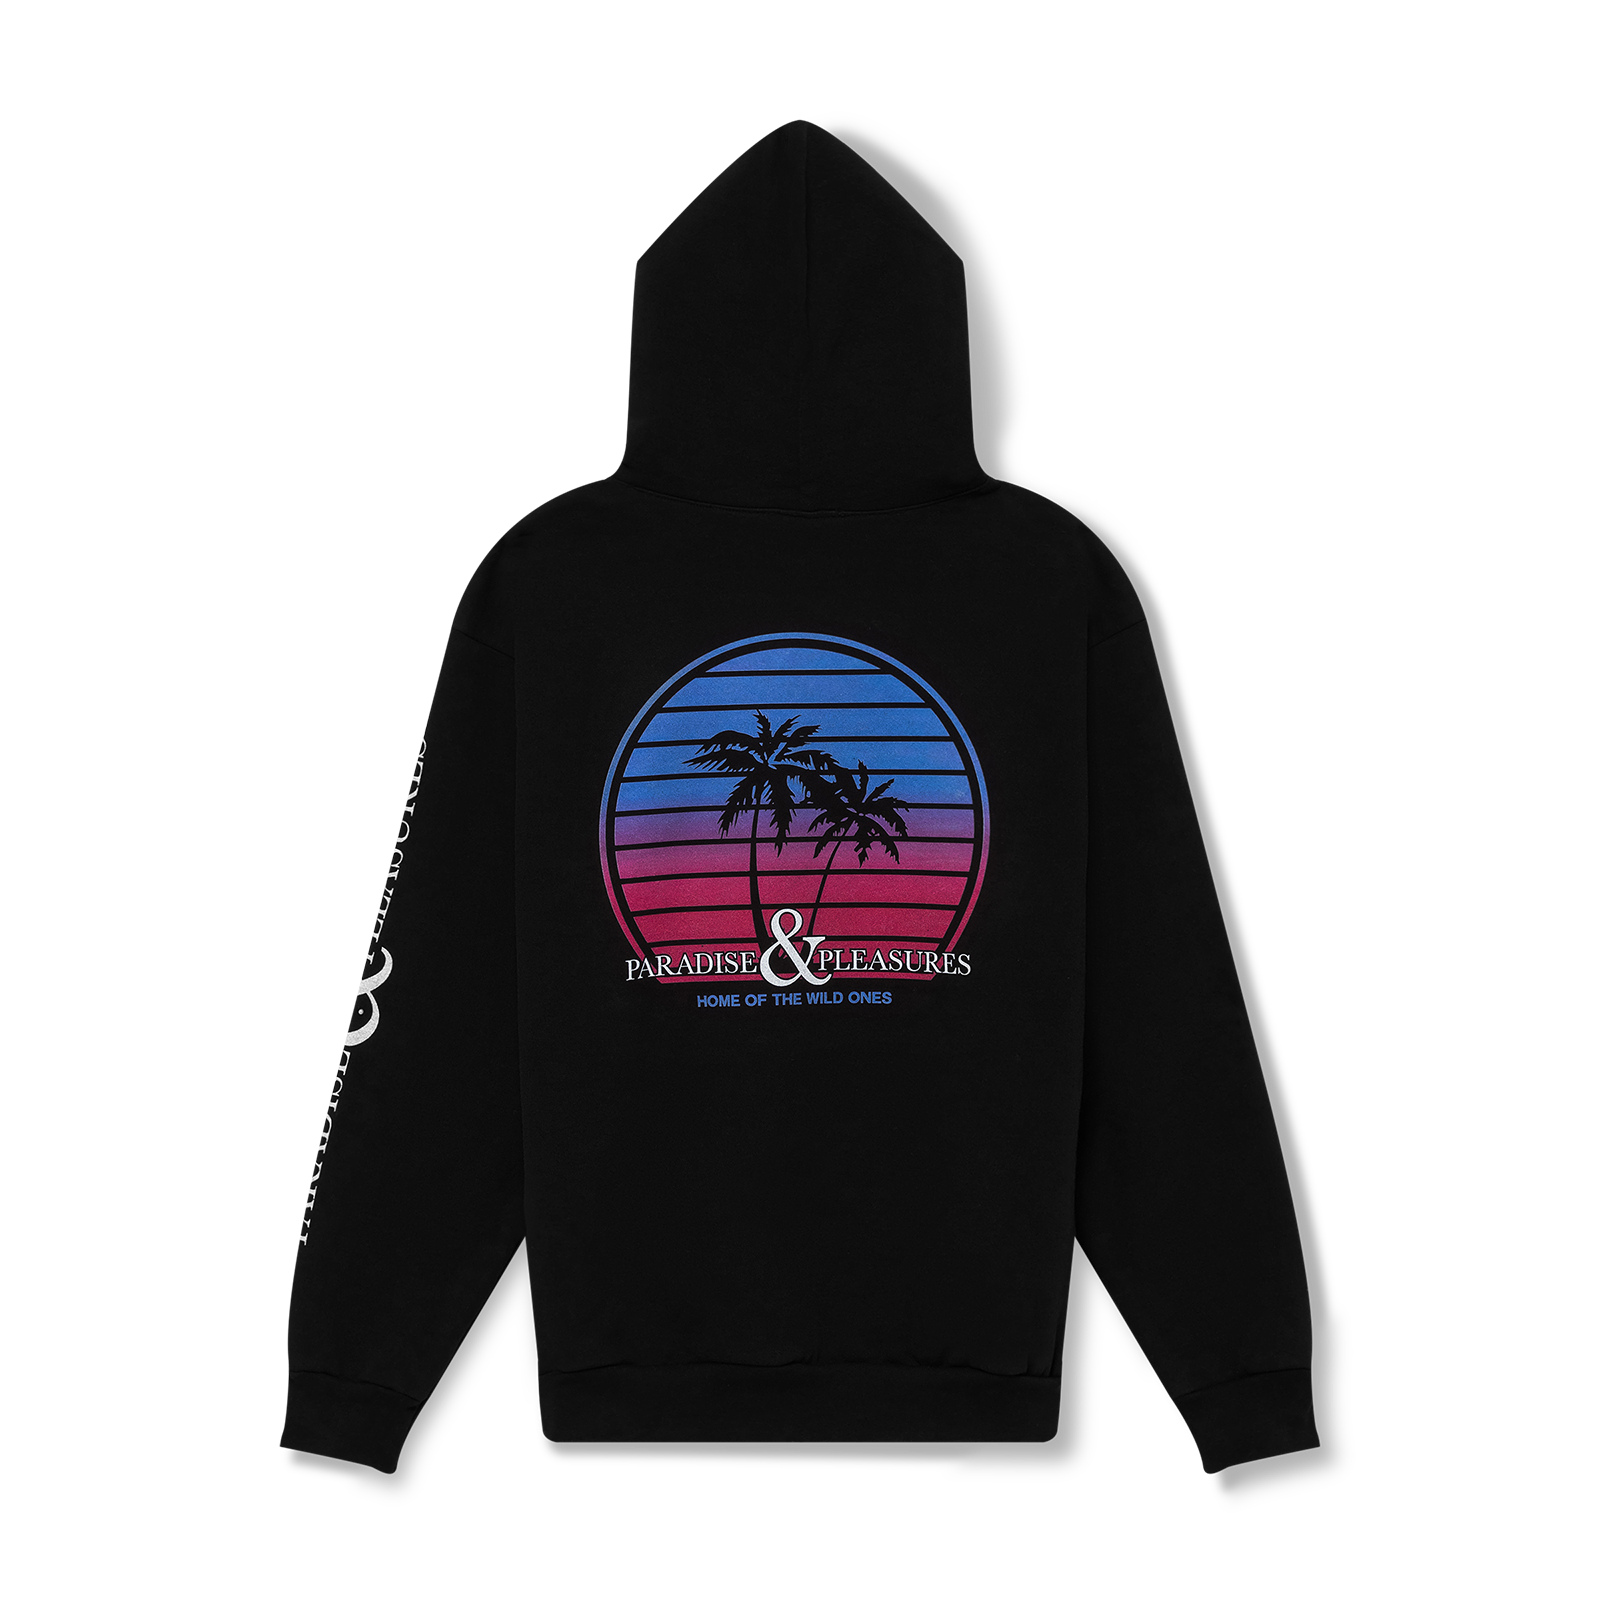 Flat lay hoodie product picture